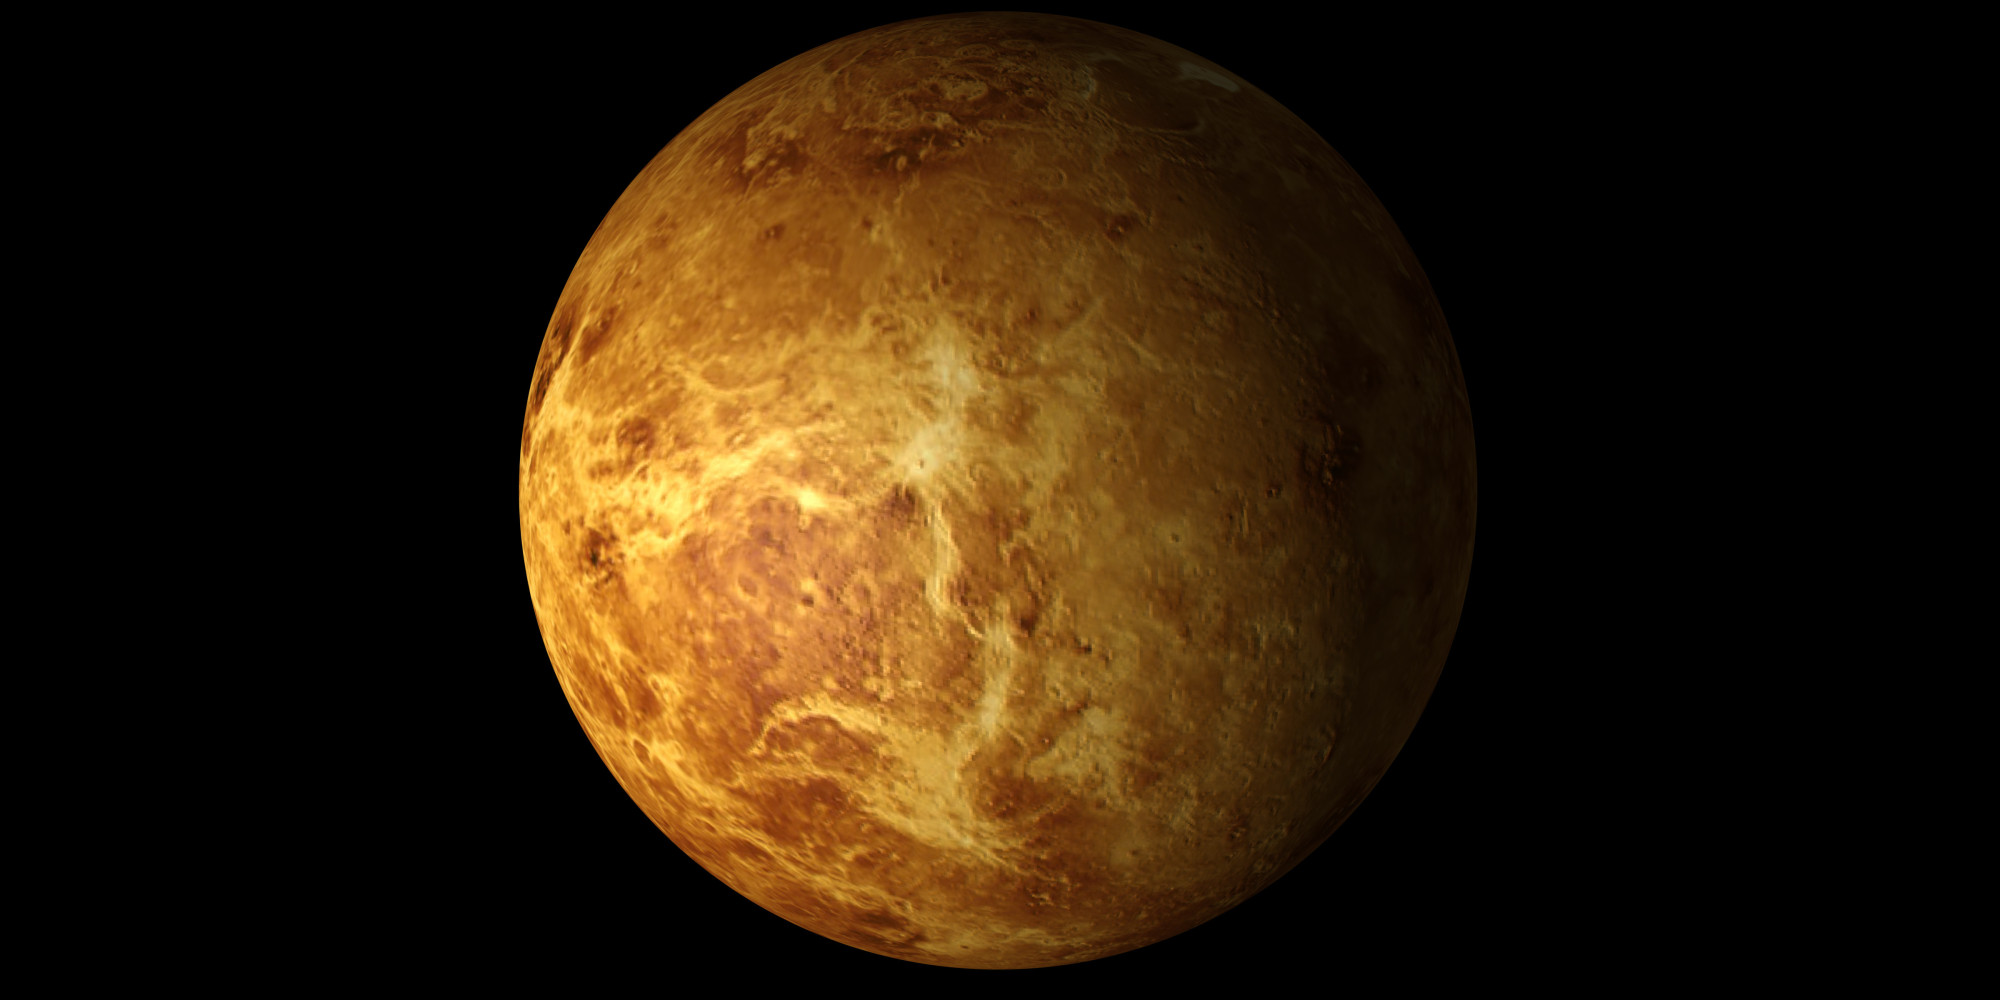 real venus planet pictures - photo #1